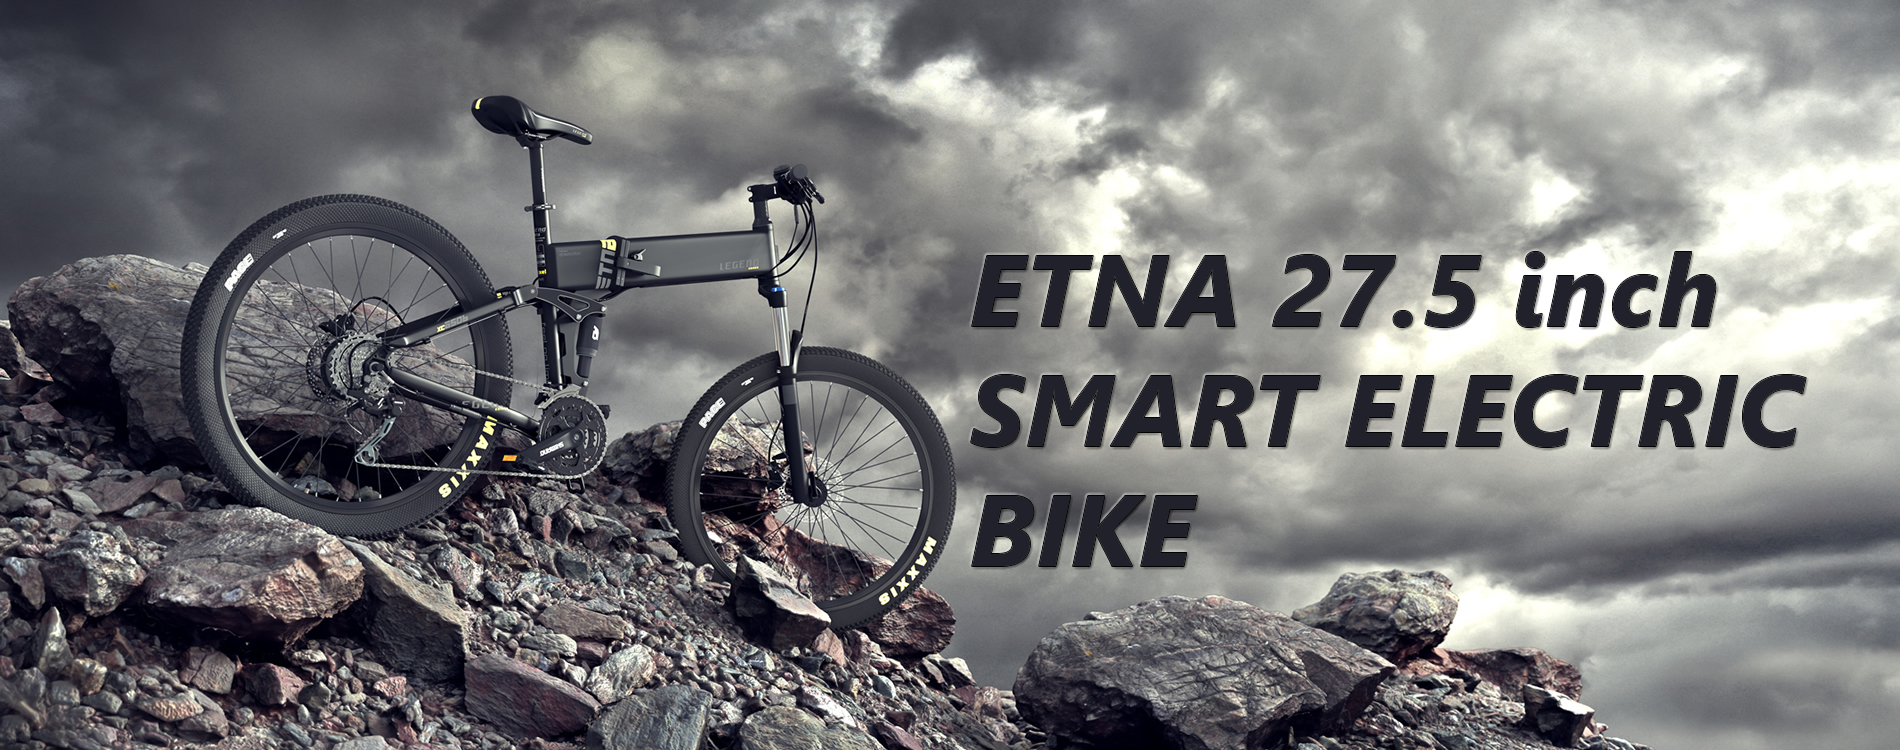 ETNA Electric Bike 27.5 inch - Only Foldable in NZ